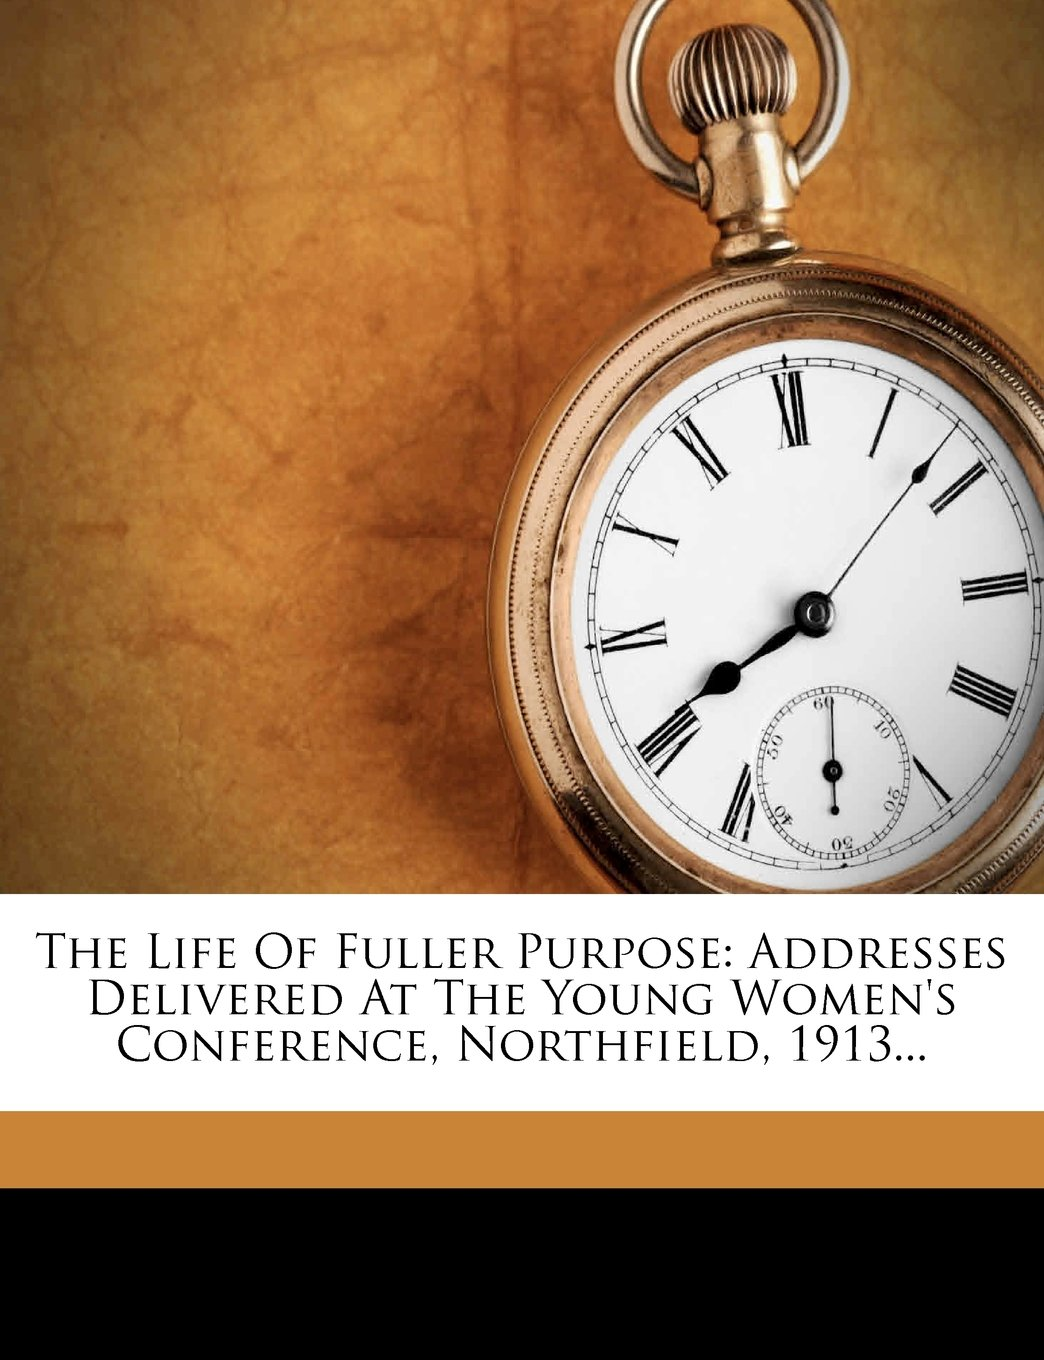 The Life Of Fuller Purpose: Addresses Delivered At The Young Women's Conference, Northfield, 1913. pdf epub